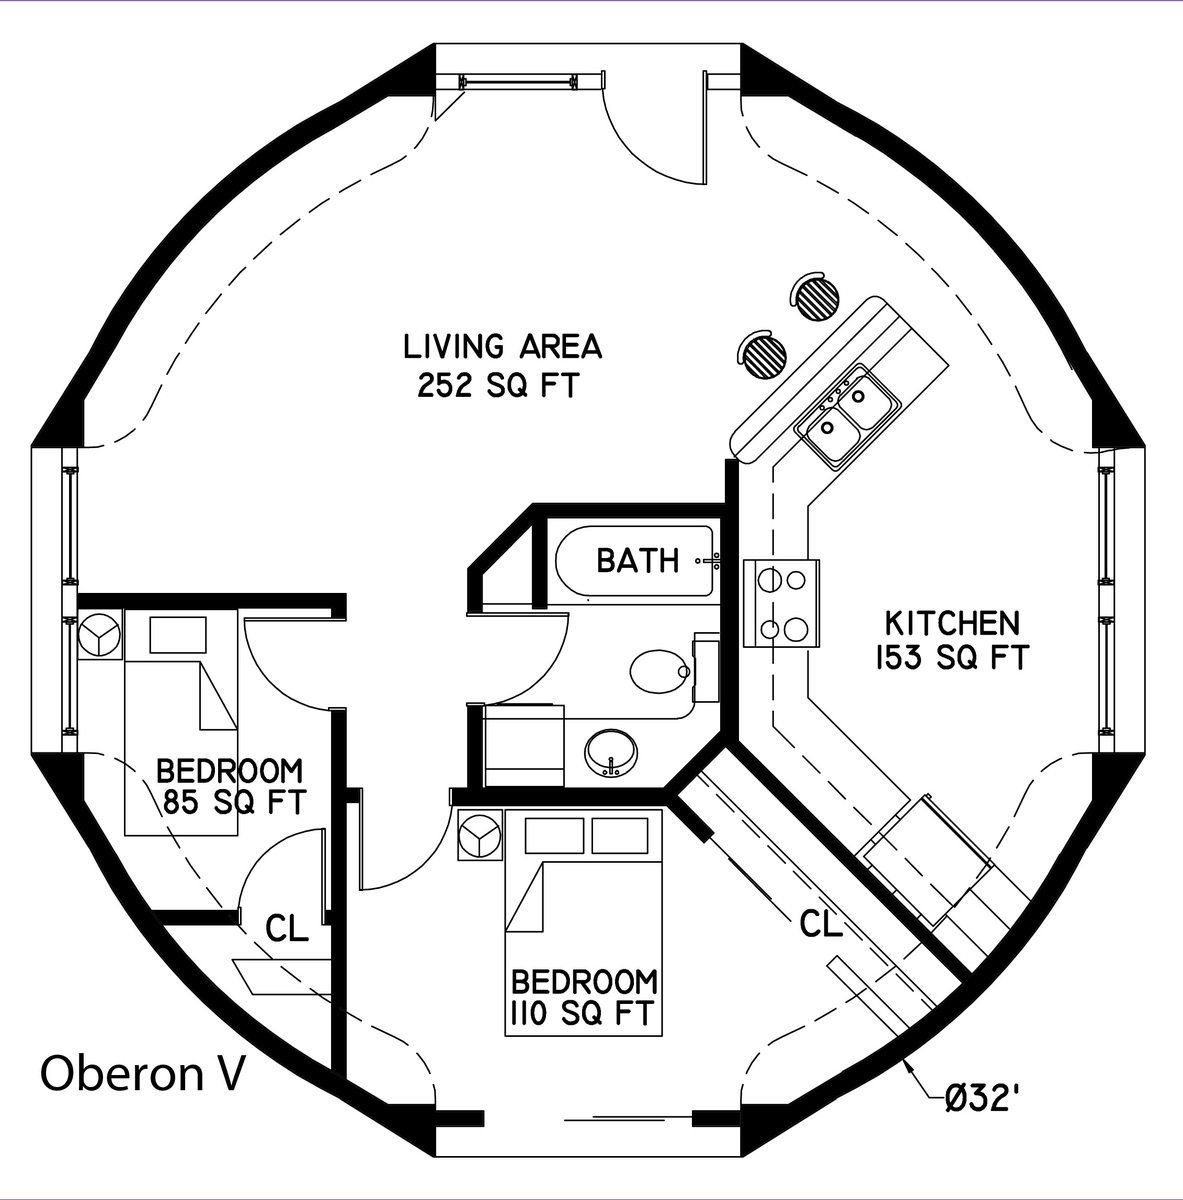 Layouts For Dome Homes Plans: Grain Bin Floor Plans In 2019